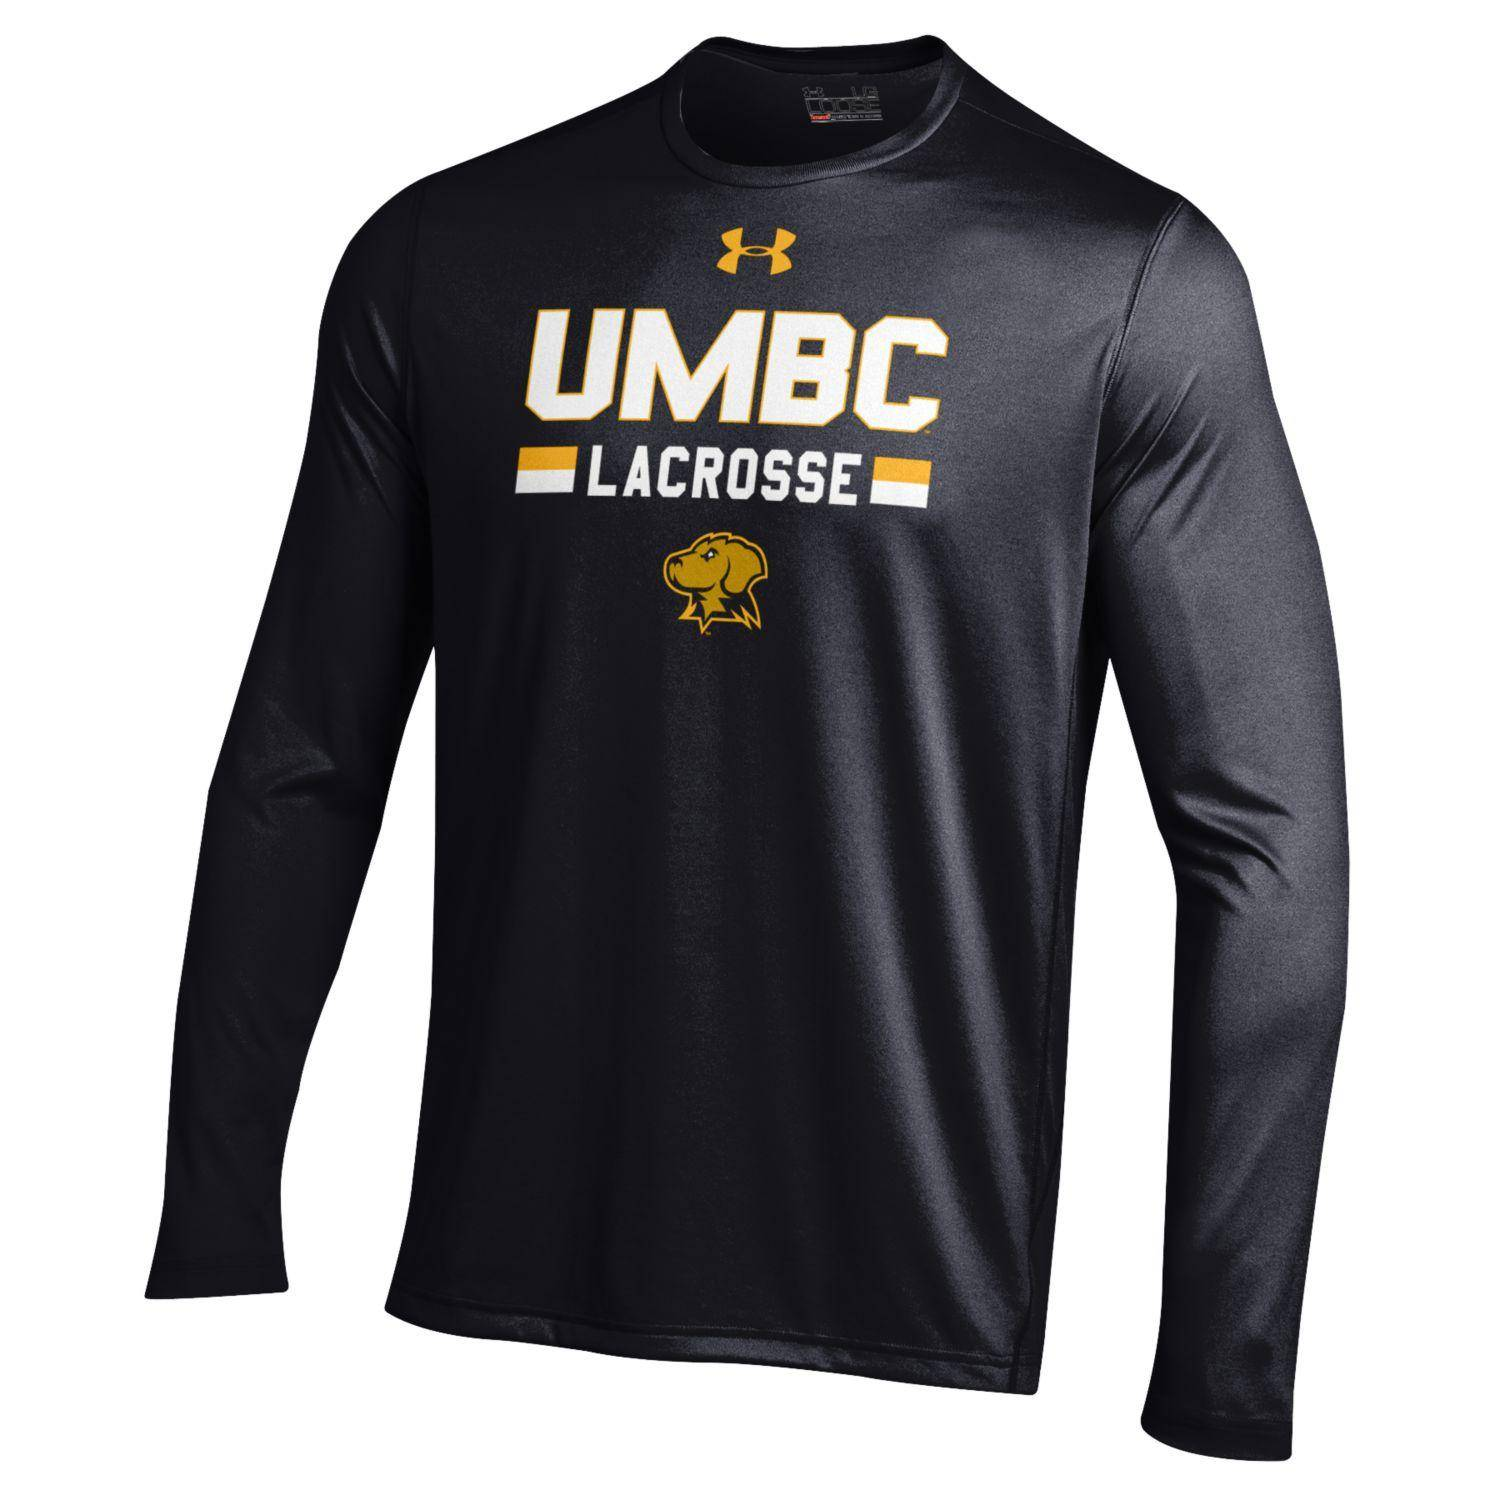 LACROSSE UNDER ARMOUR UMBC LONG SLEEVE TECH